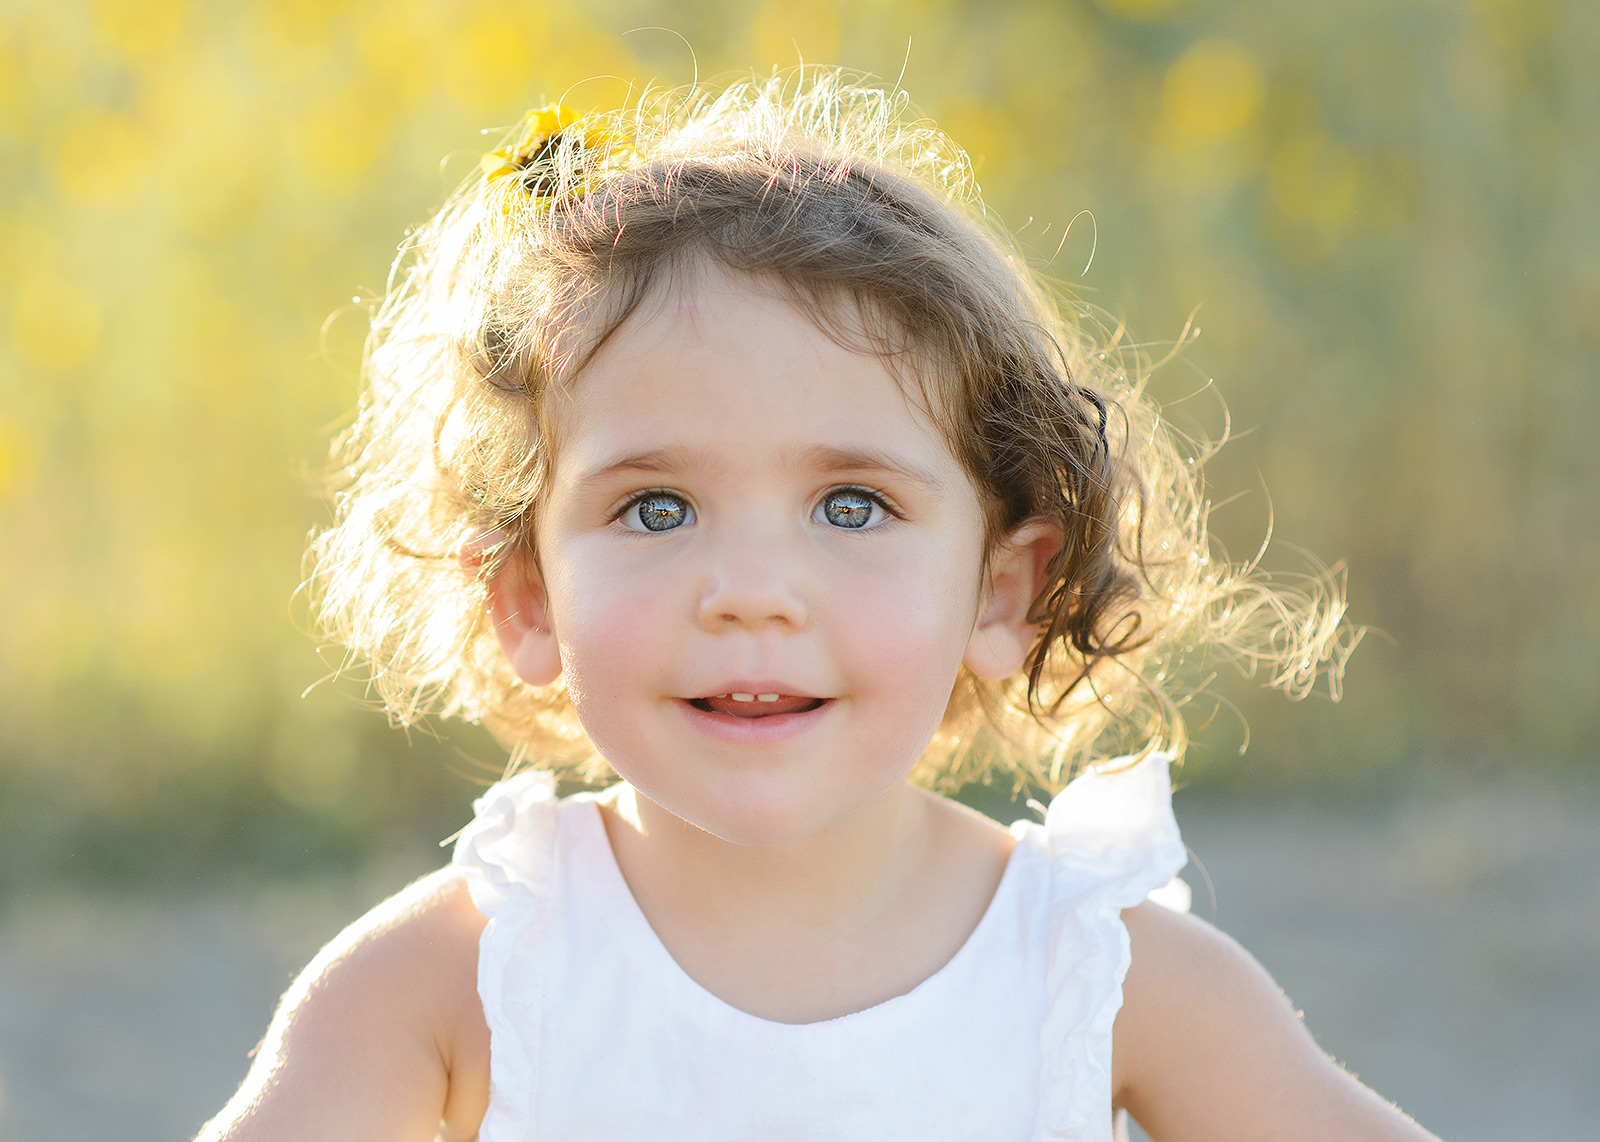 Baby Girl with Blue Eyes and Curly Hair in Natural Light